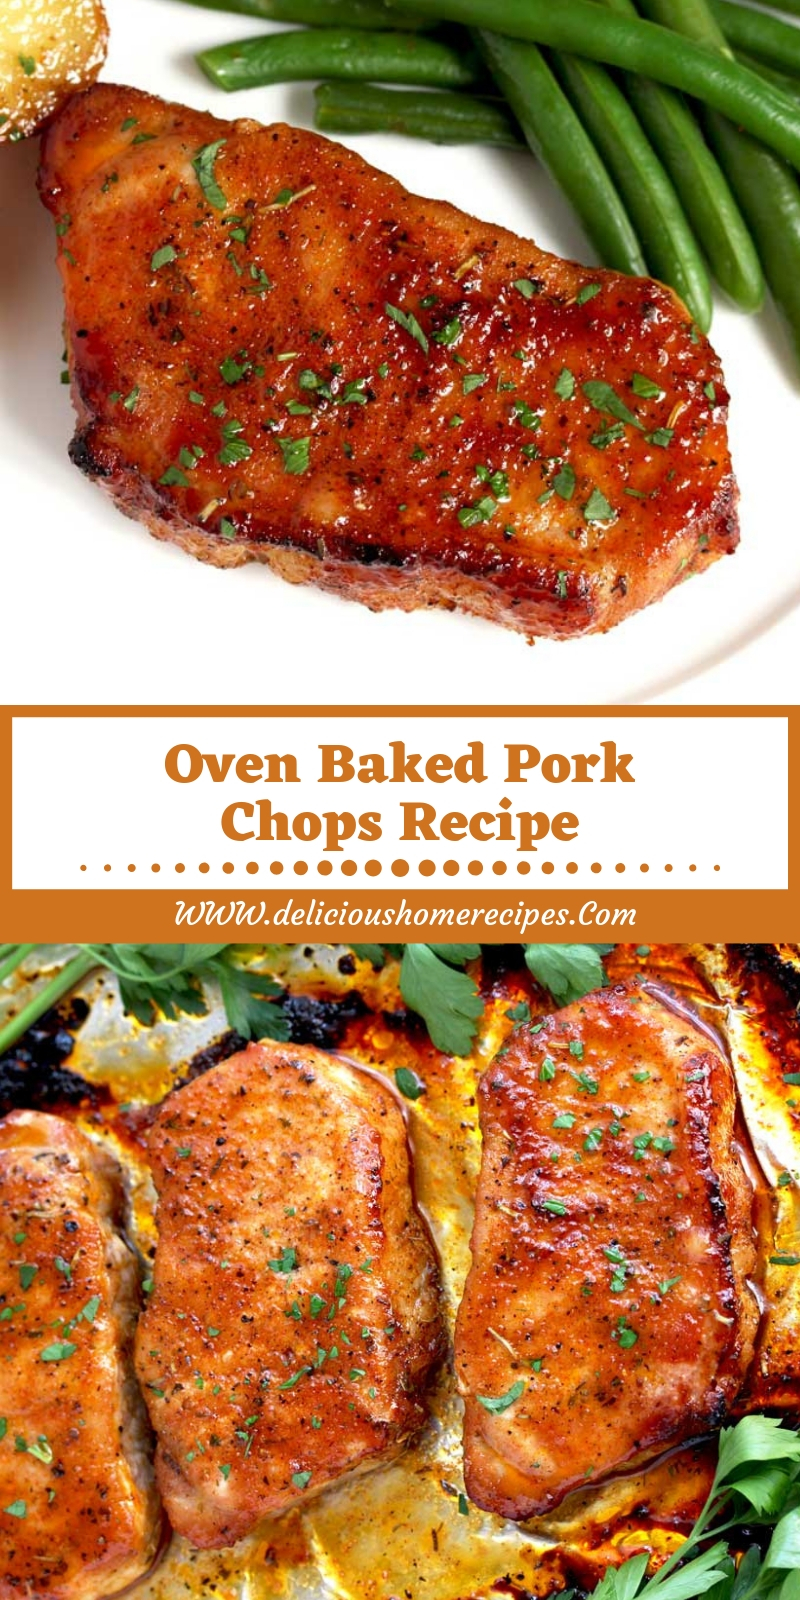 Oven Baked Pork Chops Recipe